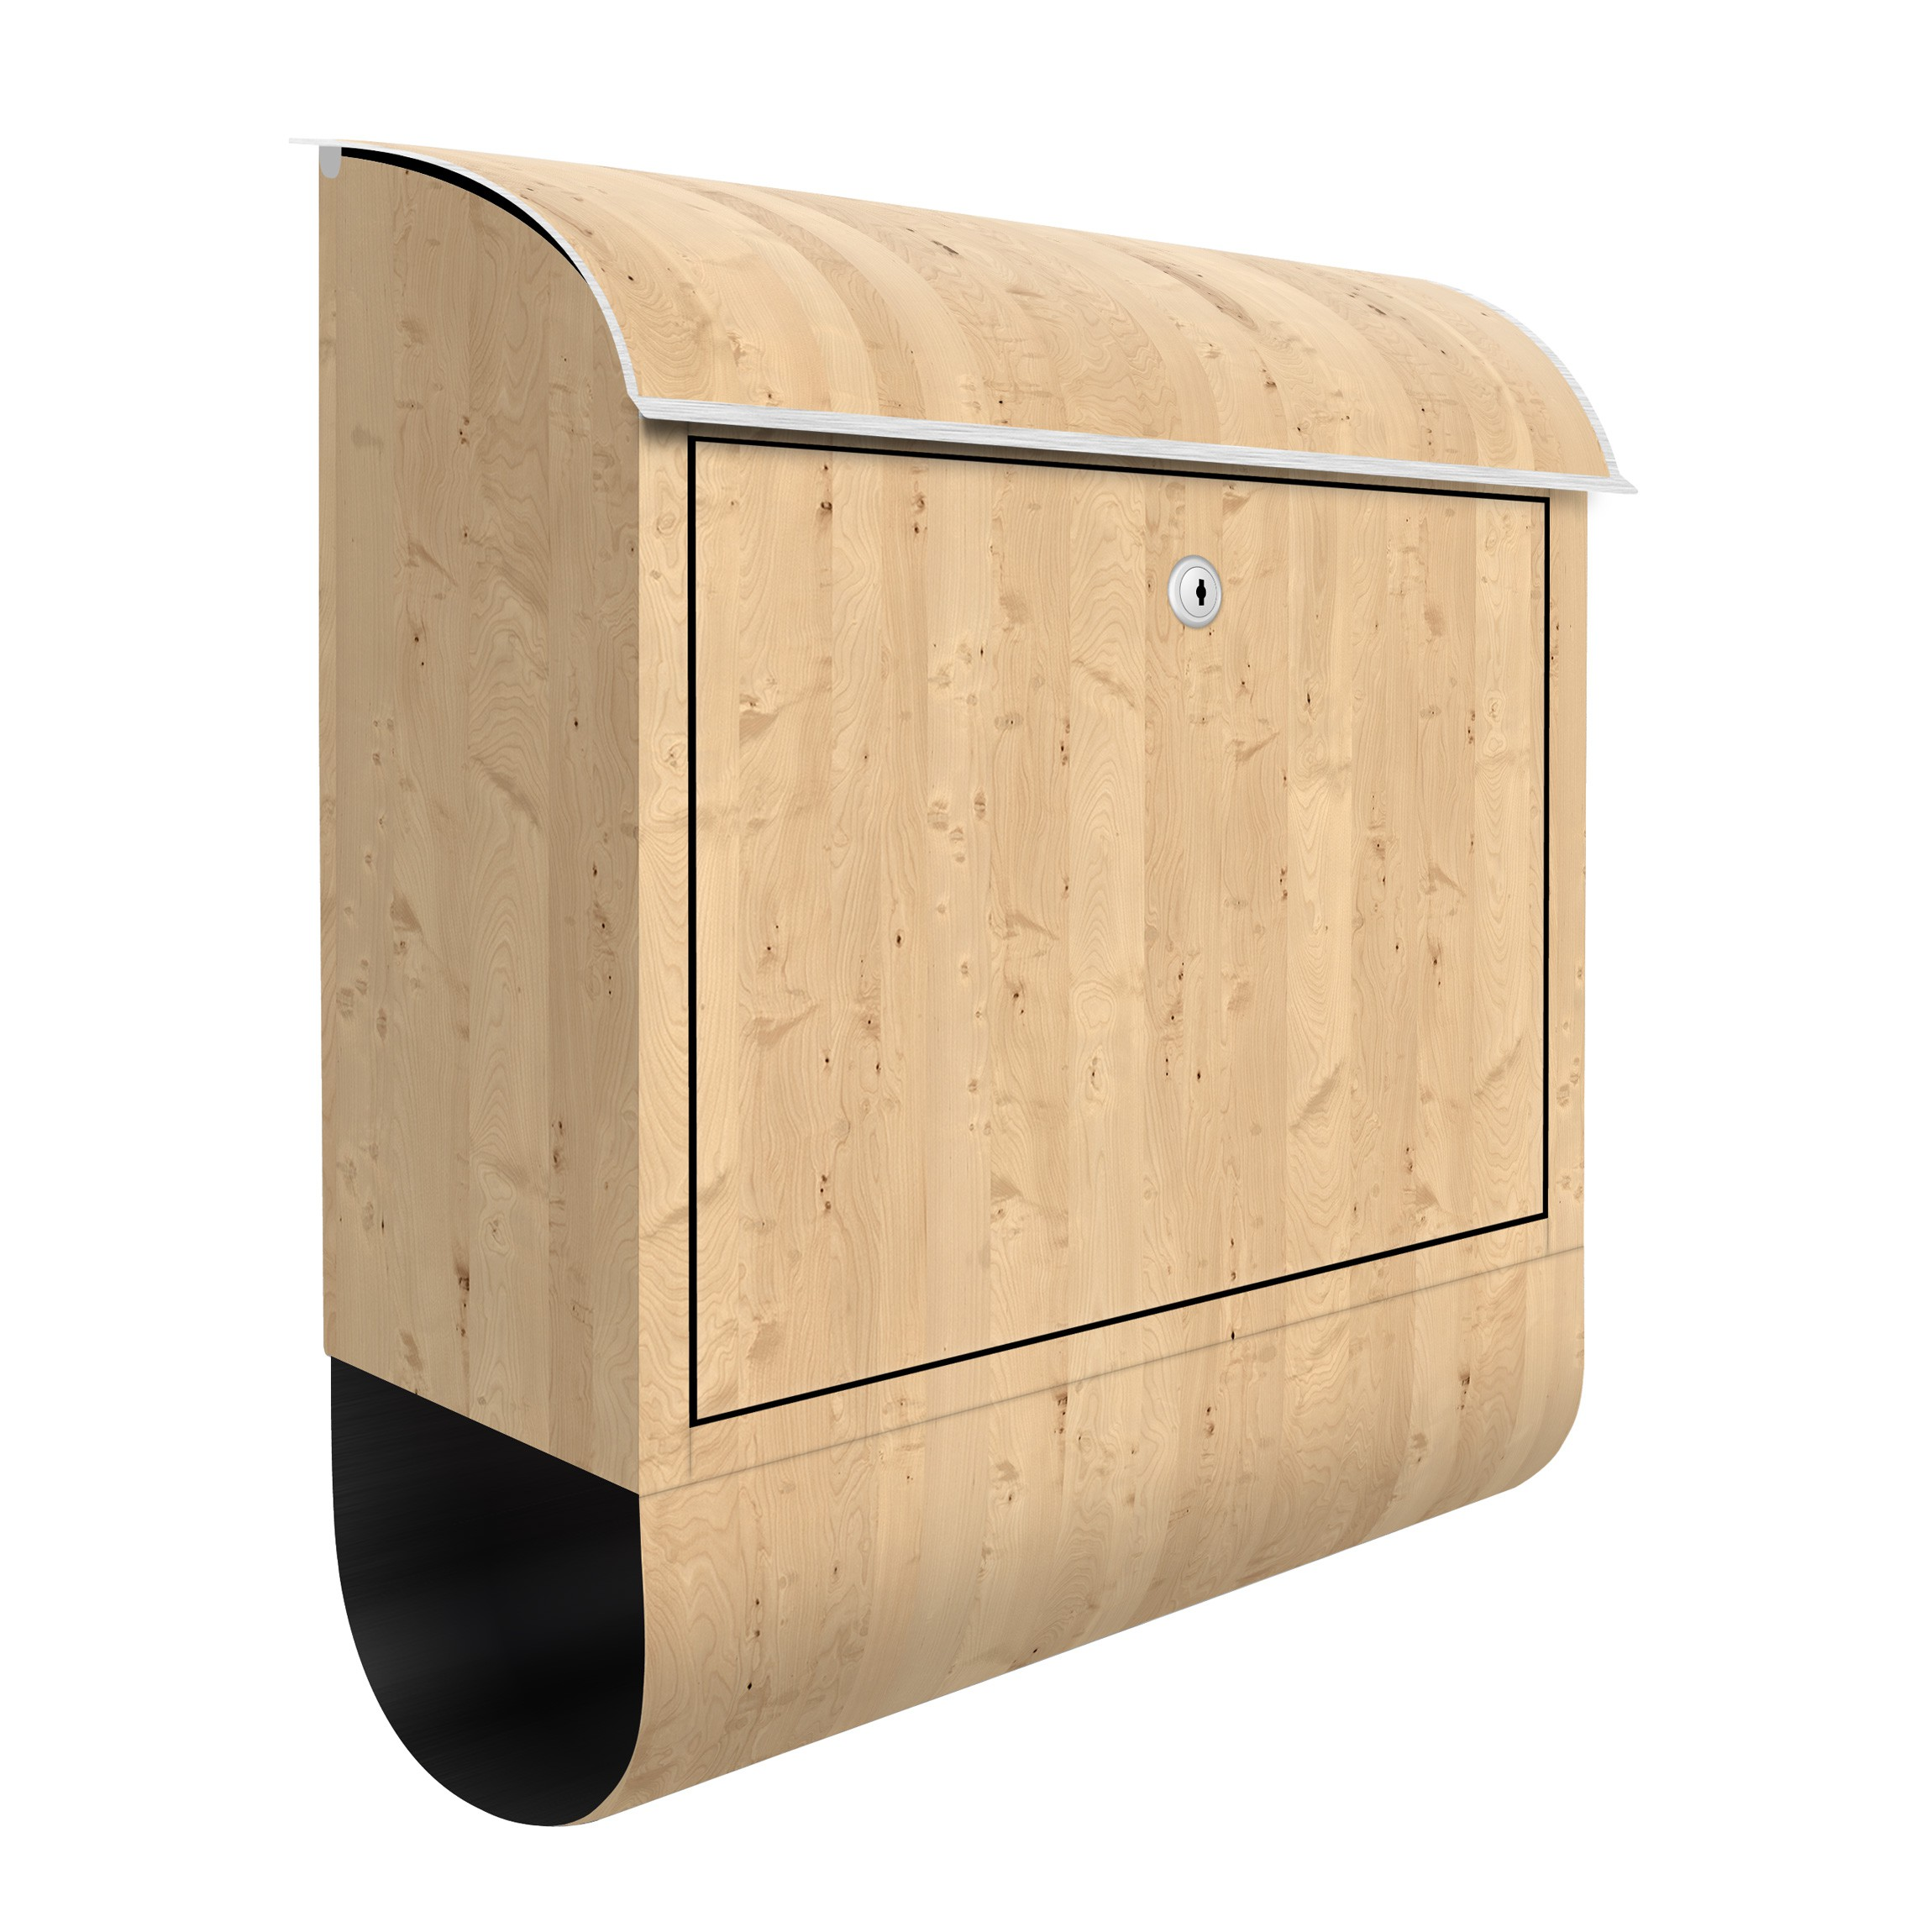 briefkasten holz apfelbirke holzoptik wandbriefkasten braun. Black Bedroom Furniture Sets. Home Design Ideas